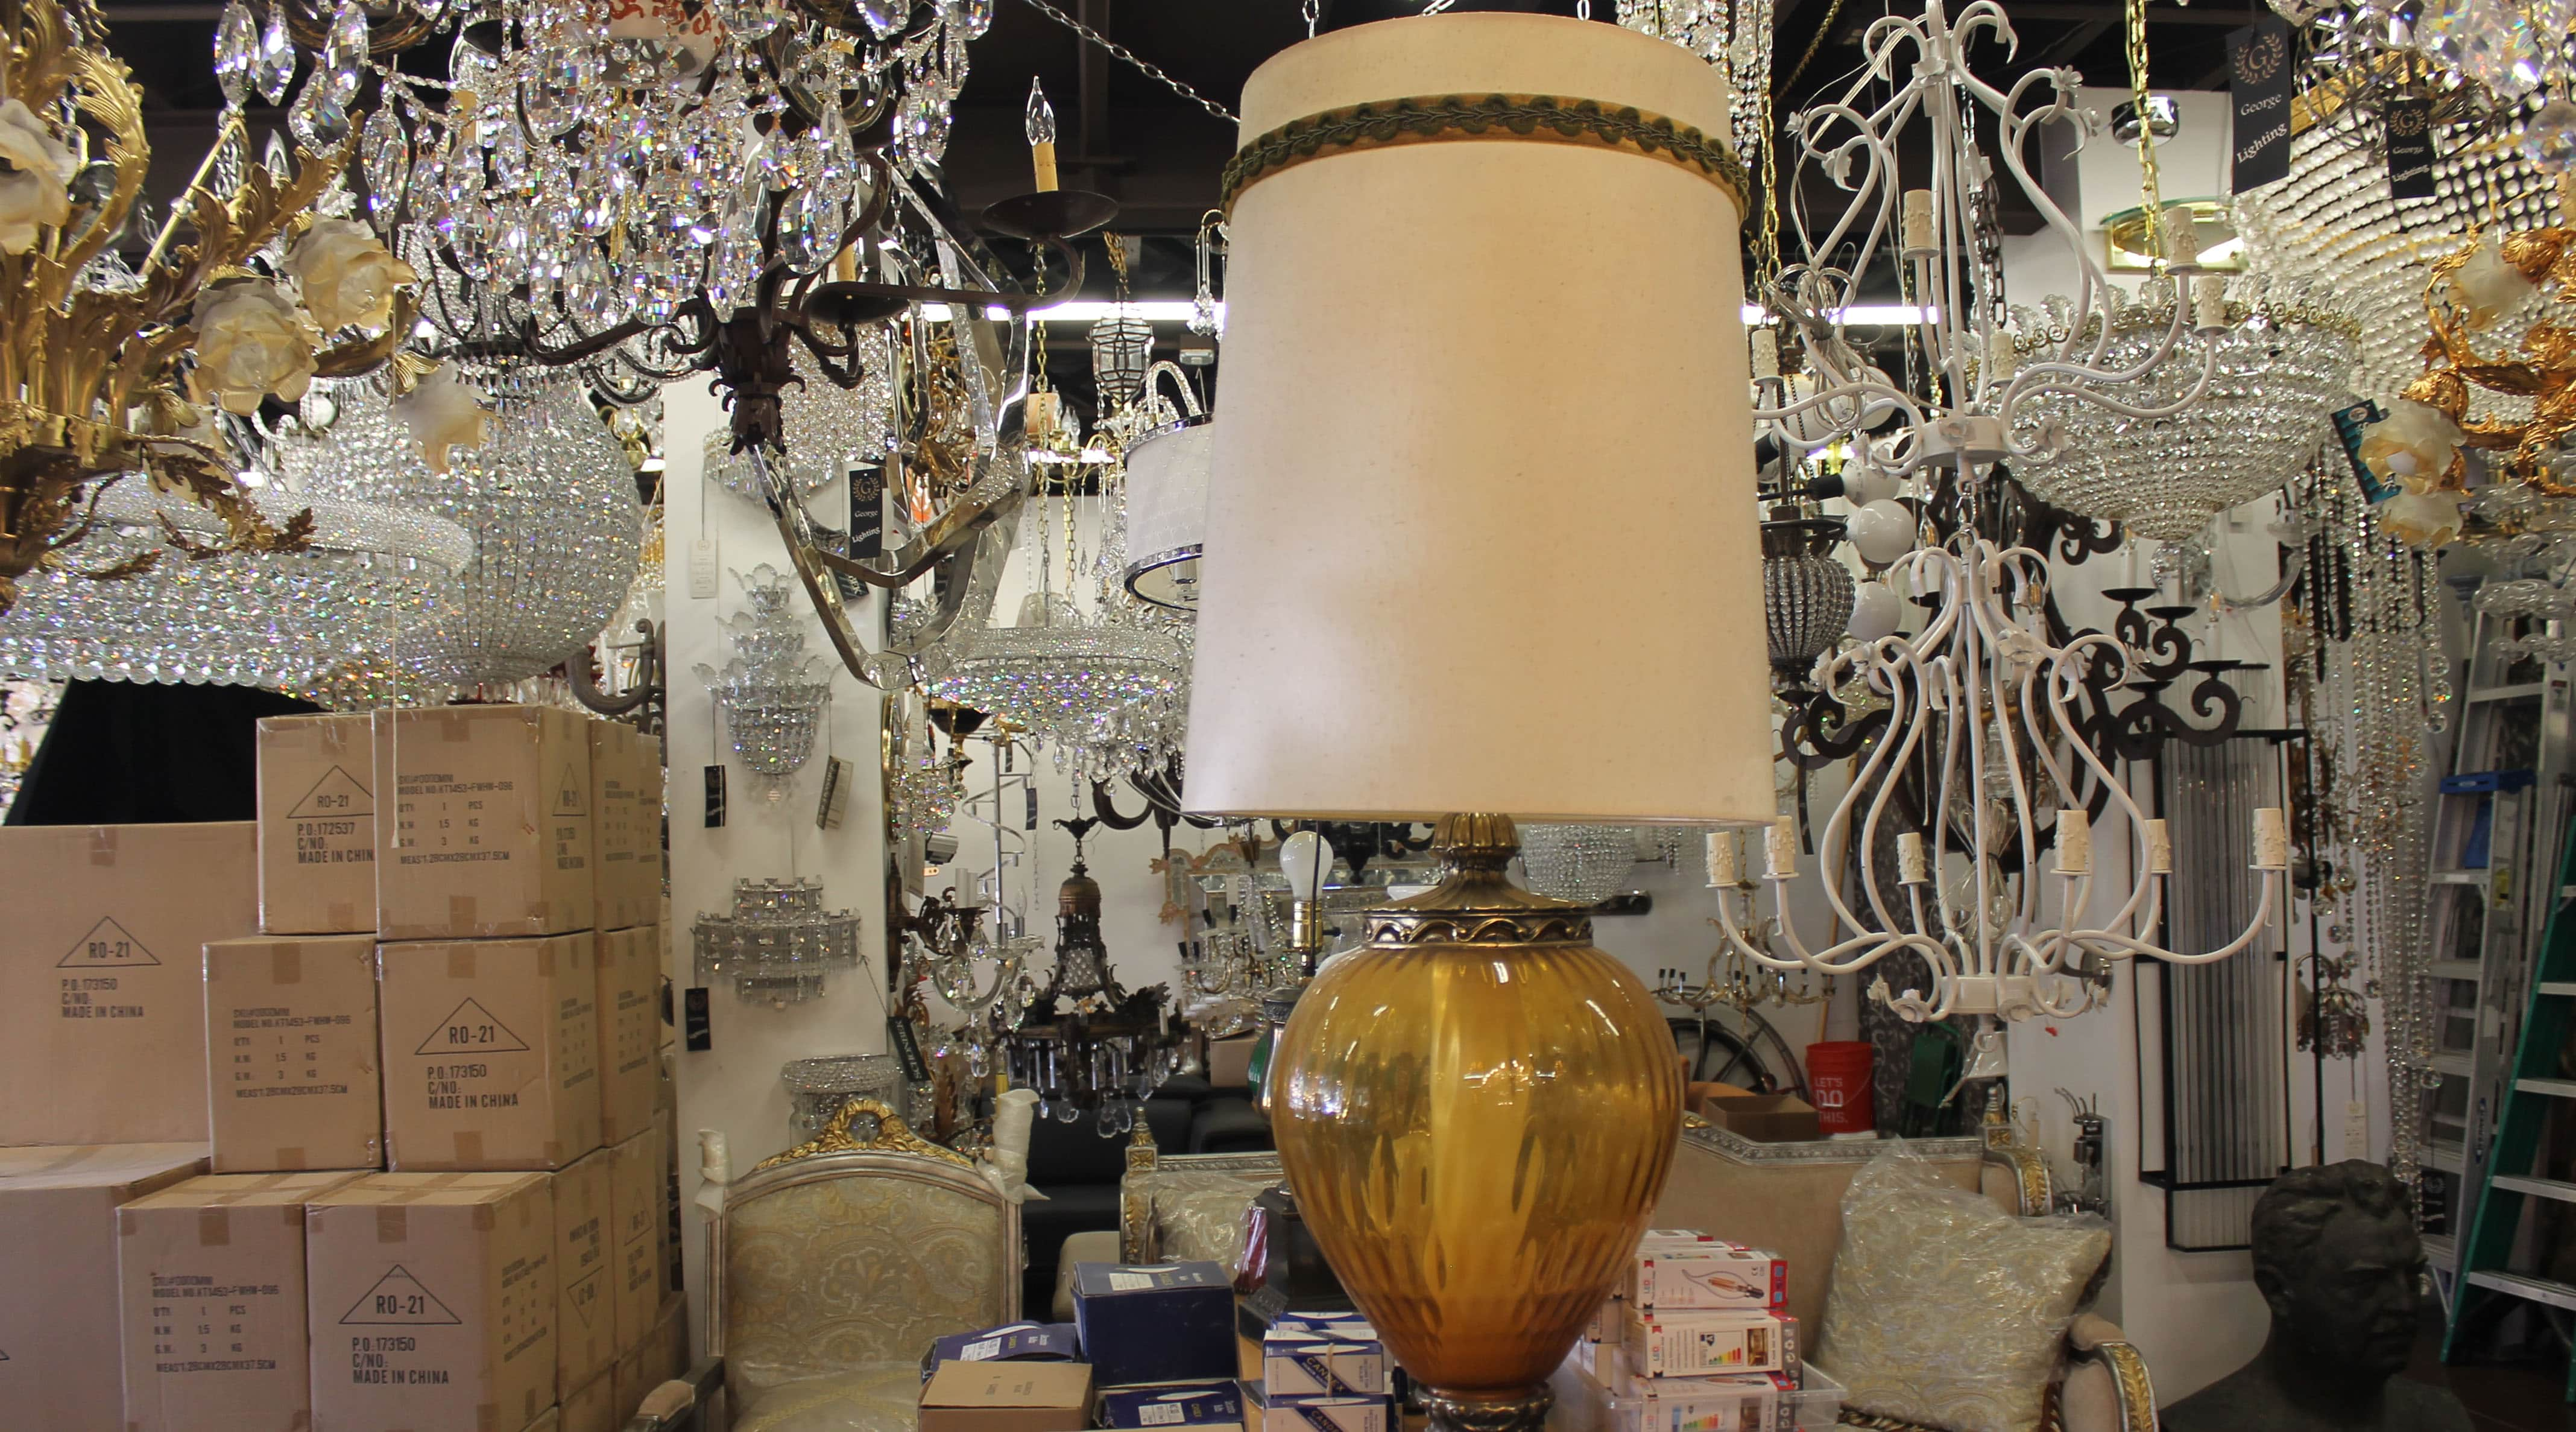 shop filled with vintage chandeliers and lamps